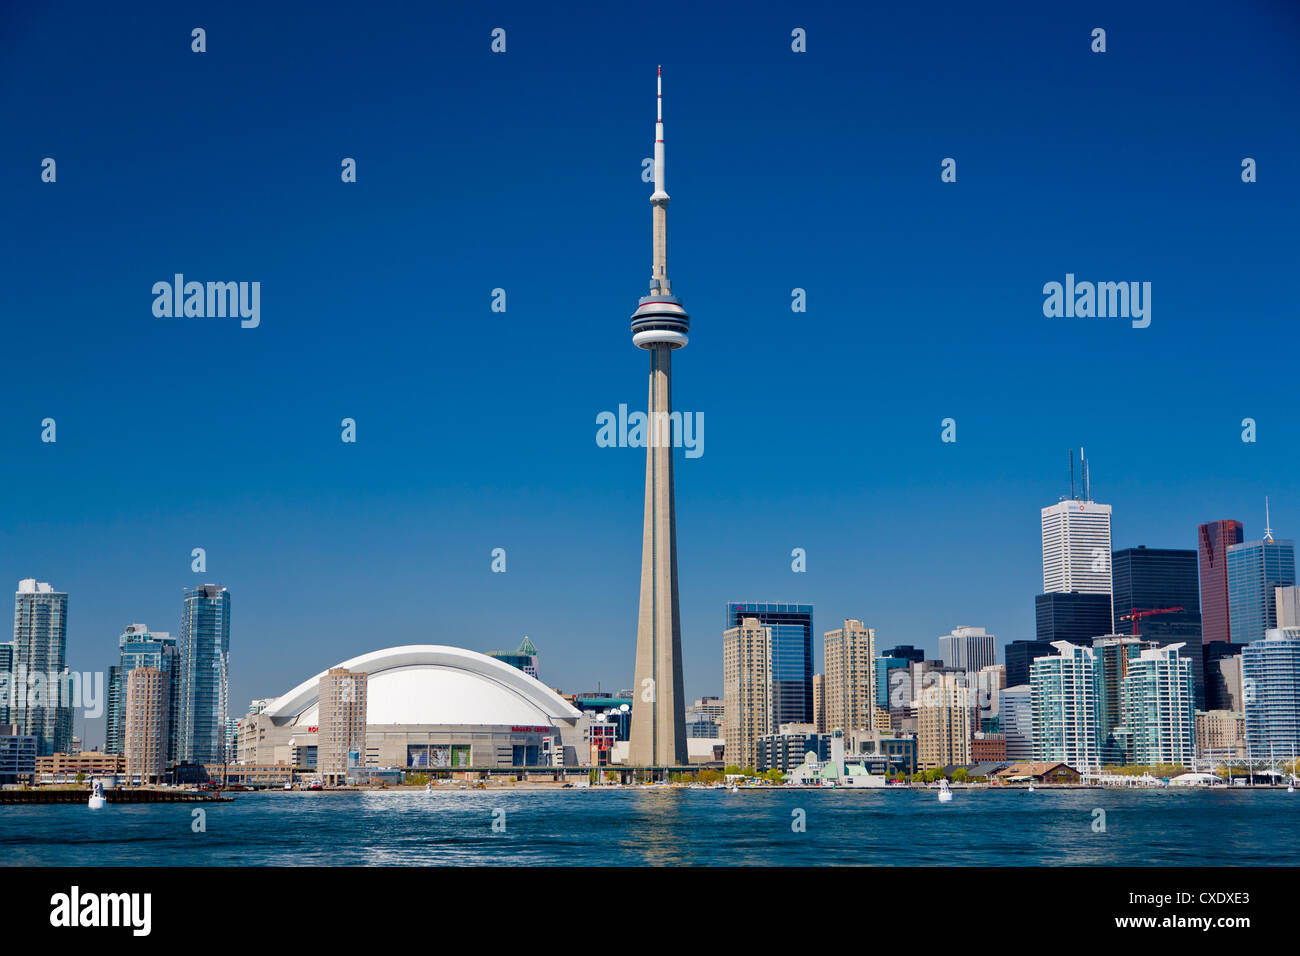 Ville montrant le CN Tower, Toronto, Ontario, Canada, Amérique du Nord Photo Stock